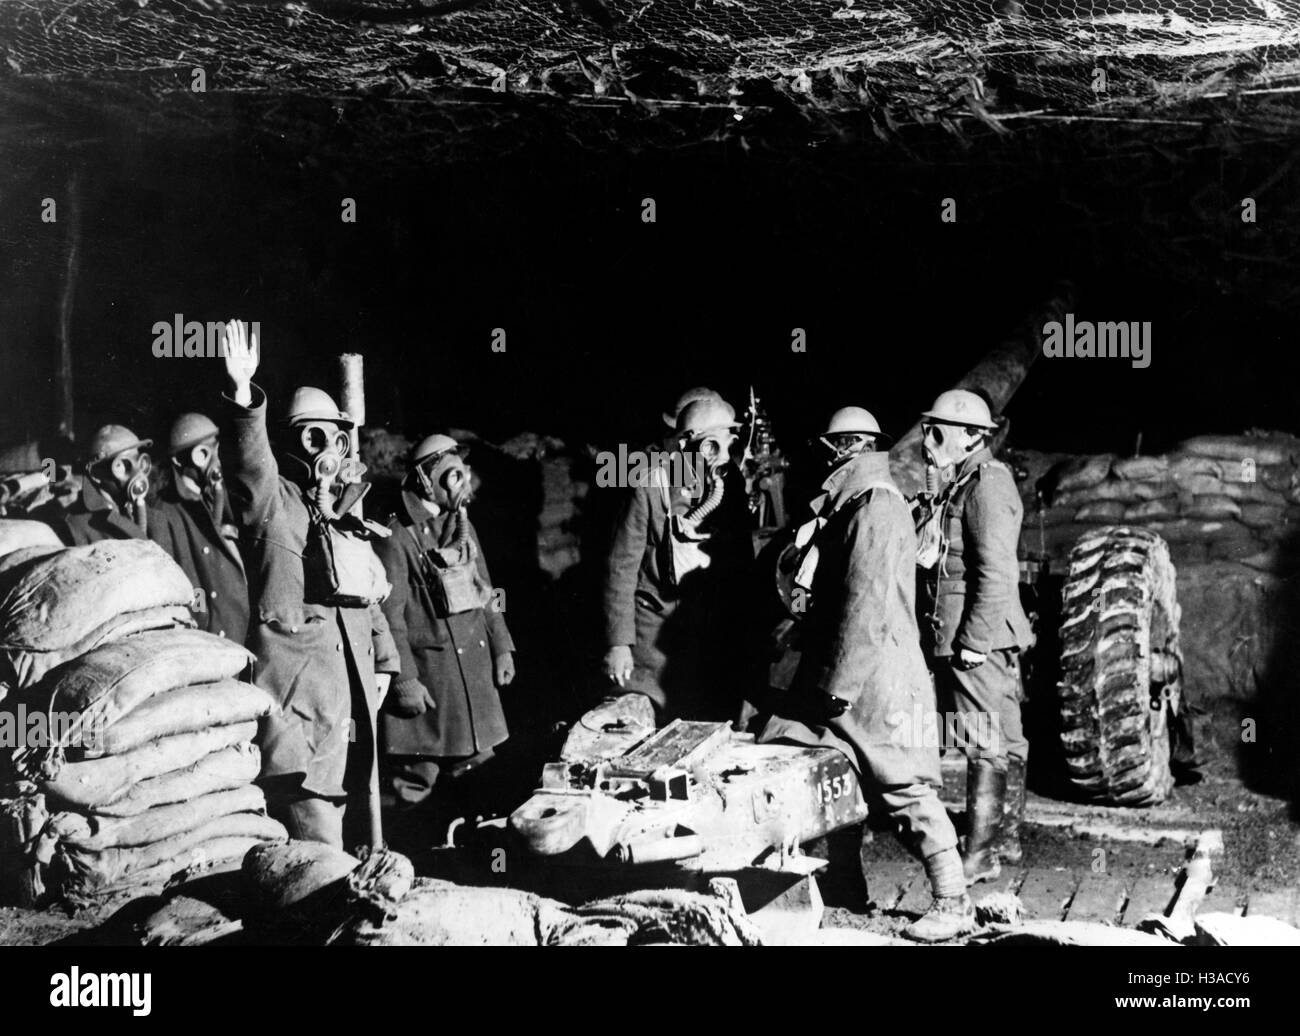 British artillery in France, 1939 - Stock Image